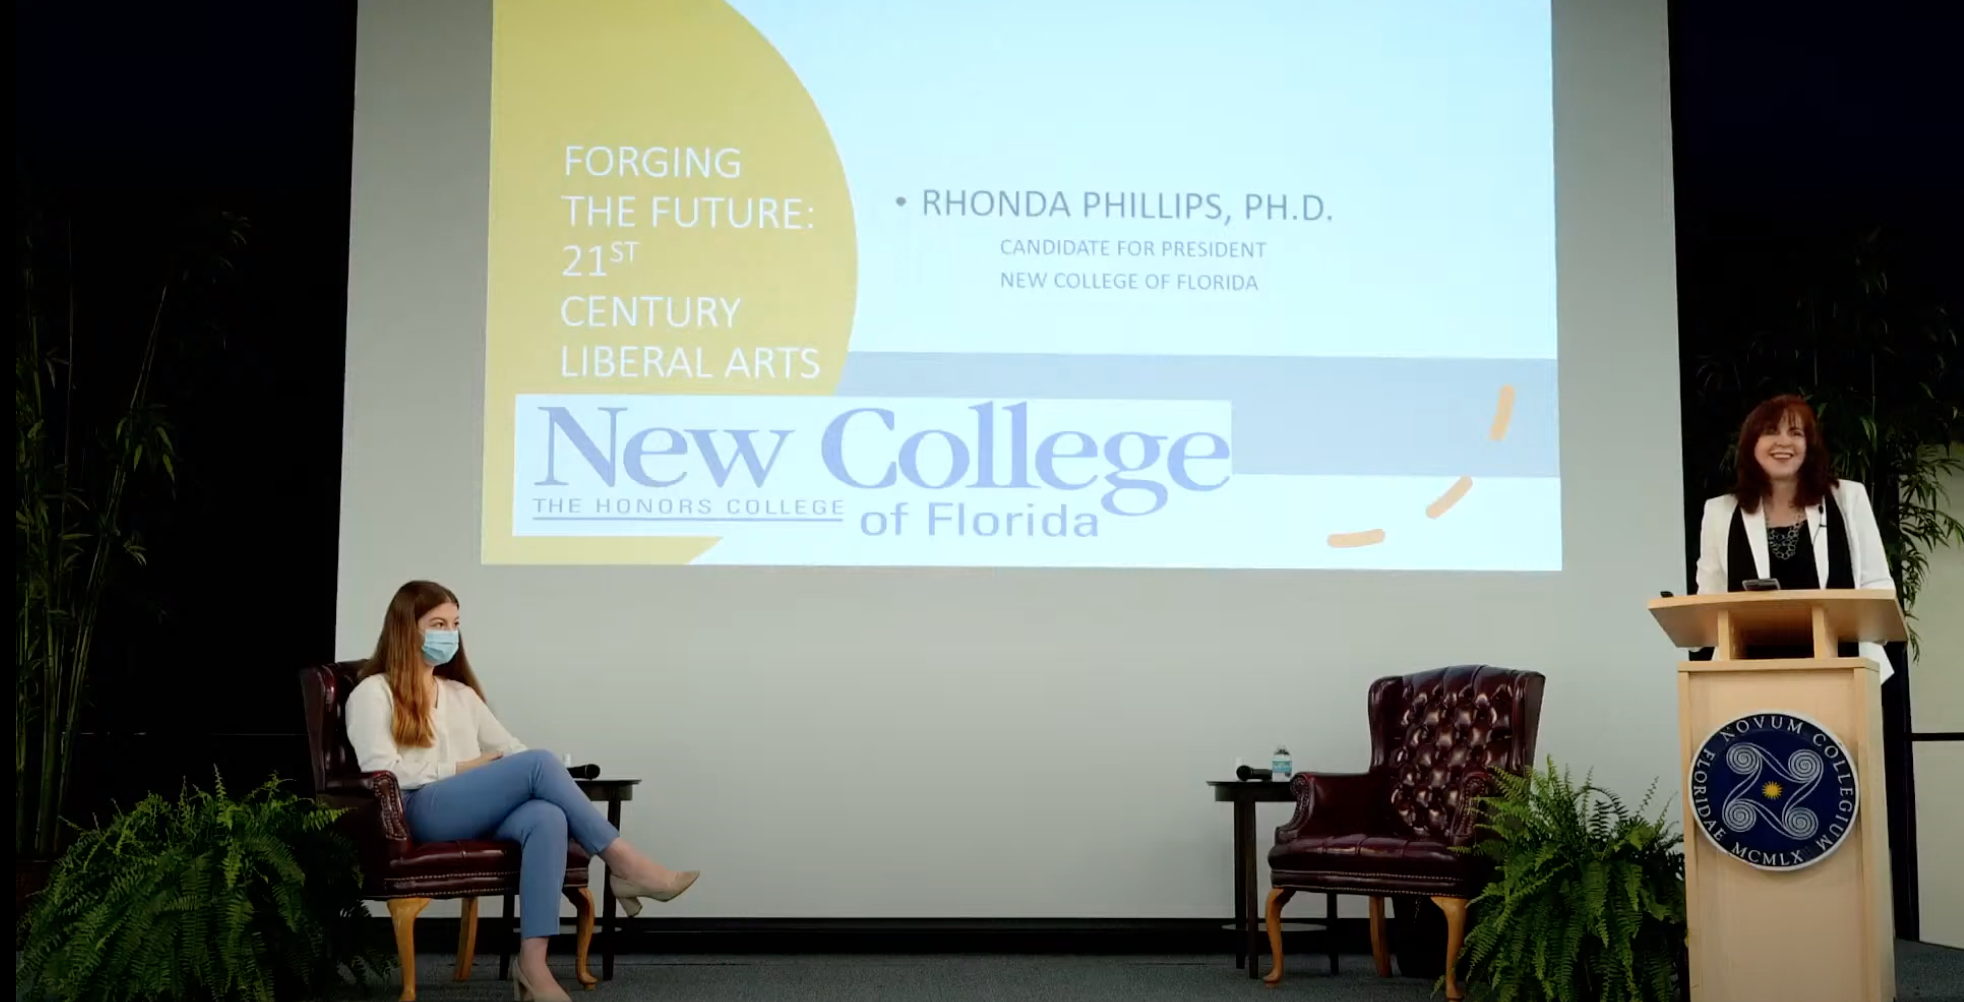 Presidential candidate Rhonda Phillips visits New College